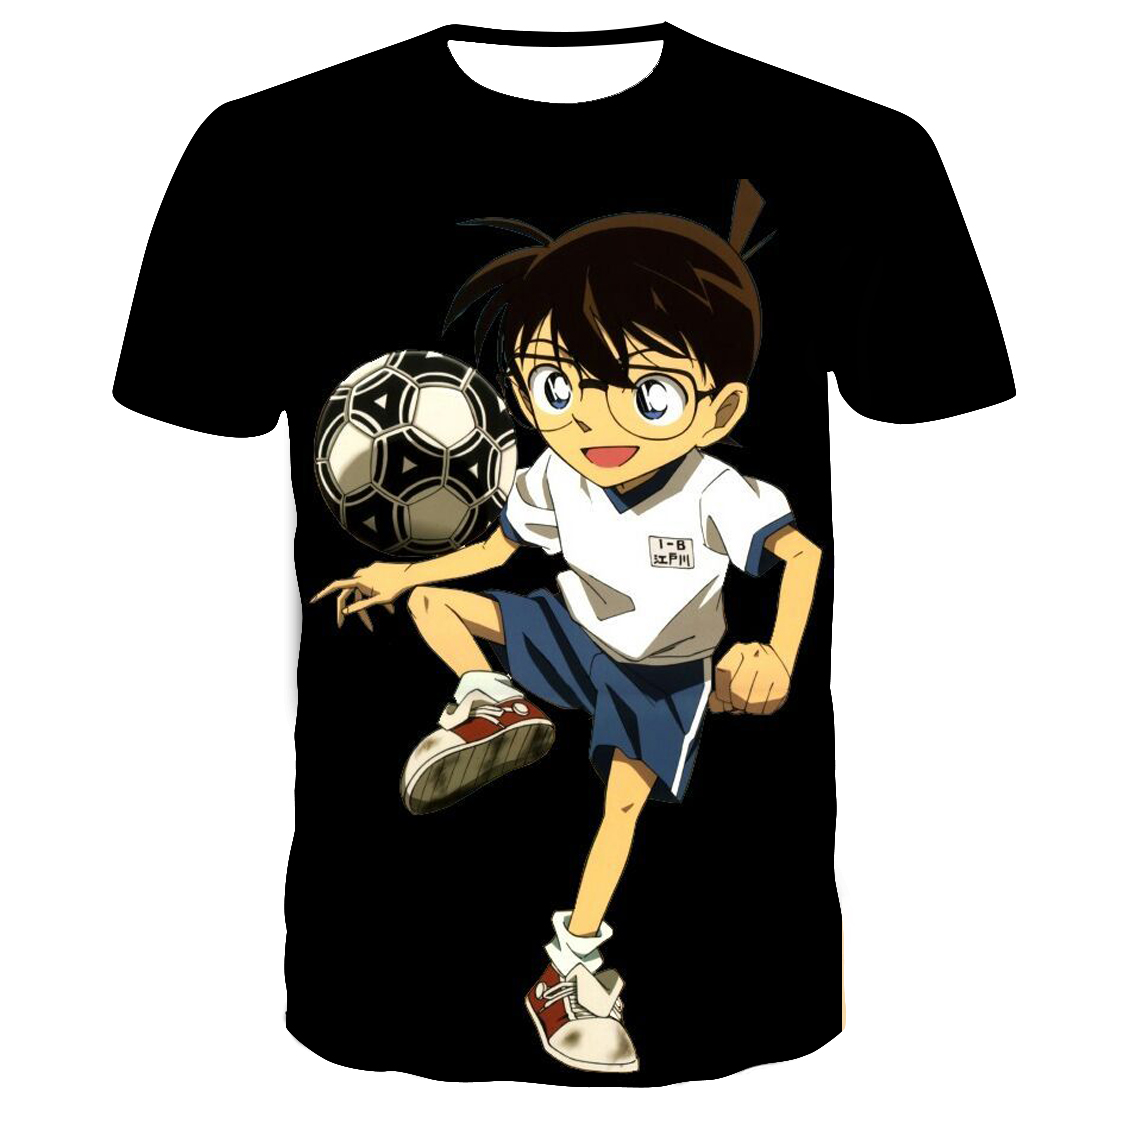 Summer new men's 3DT shirt, Japanese anime cartoon series, 3D digital printing, fashionable and cool casual T-shirt couple